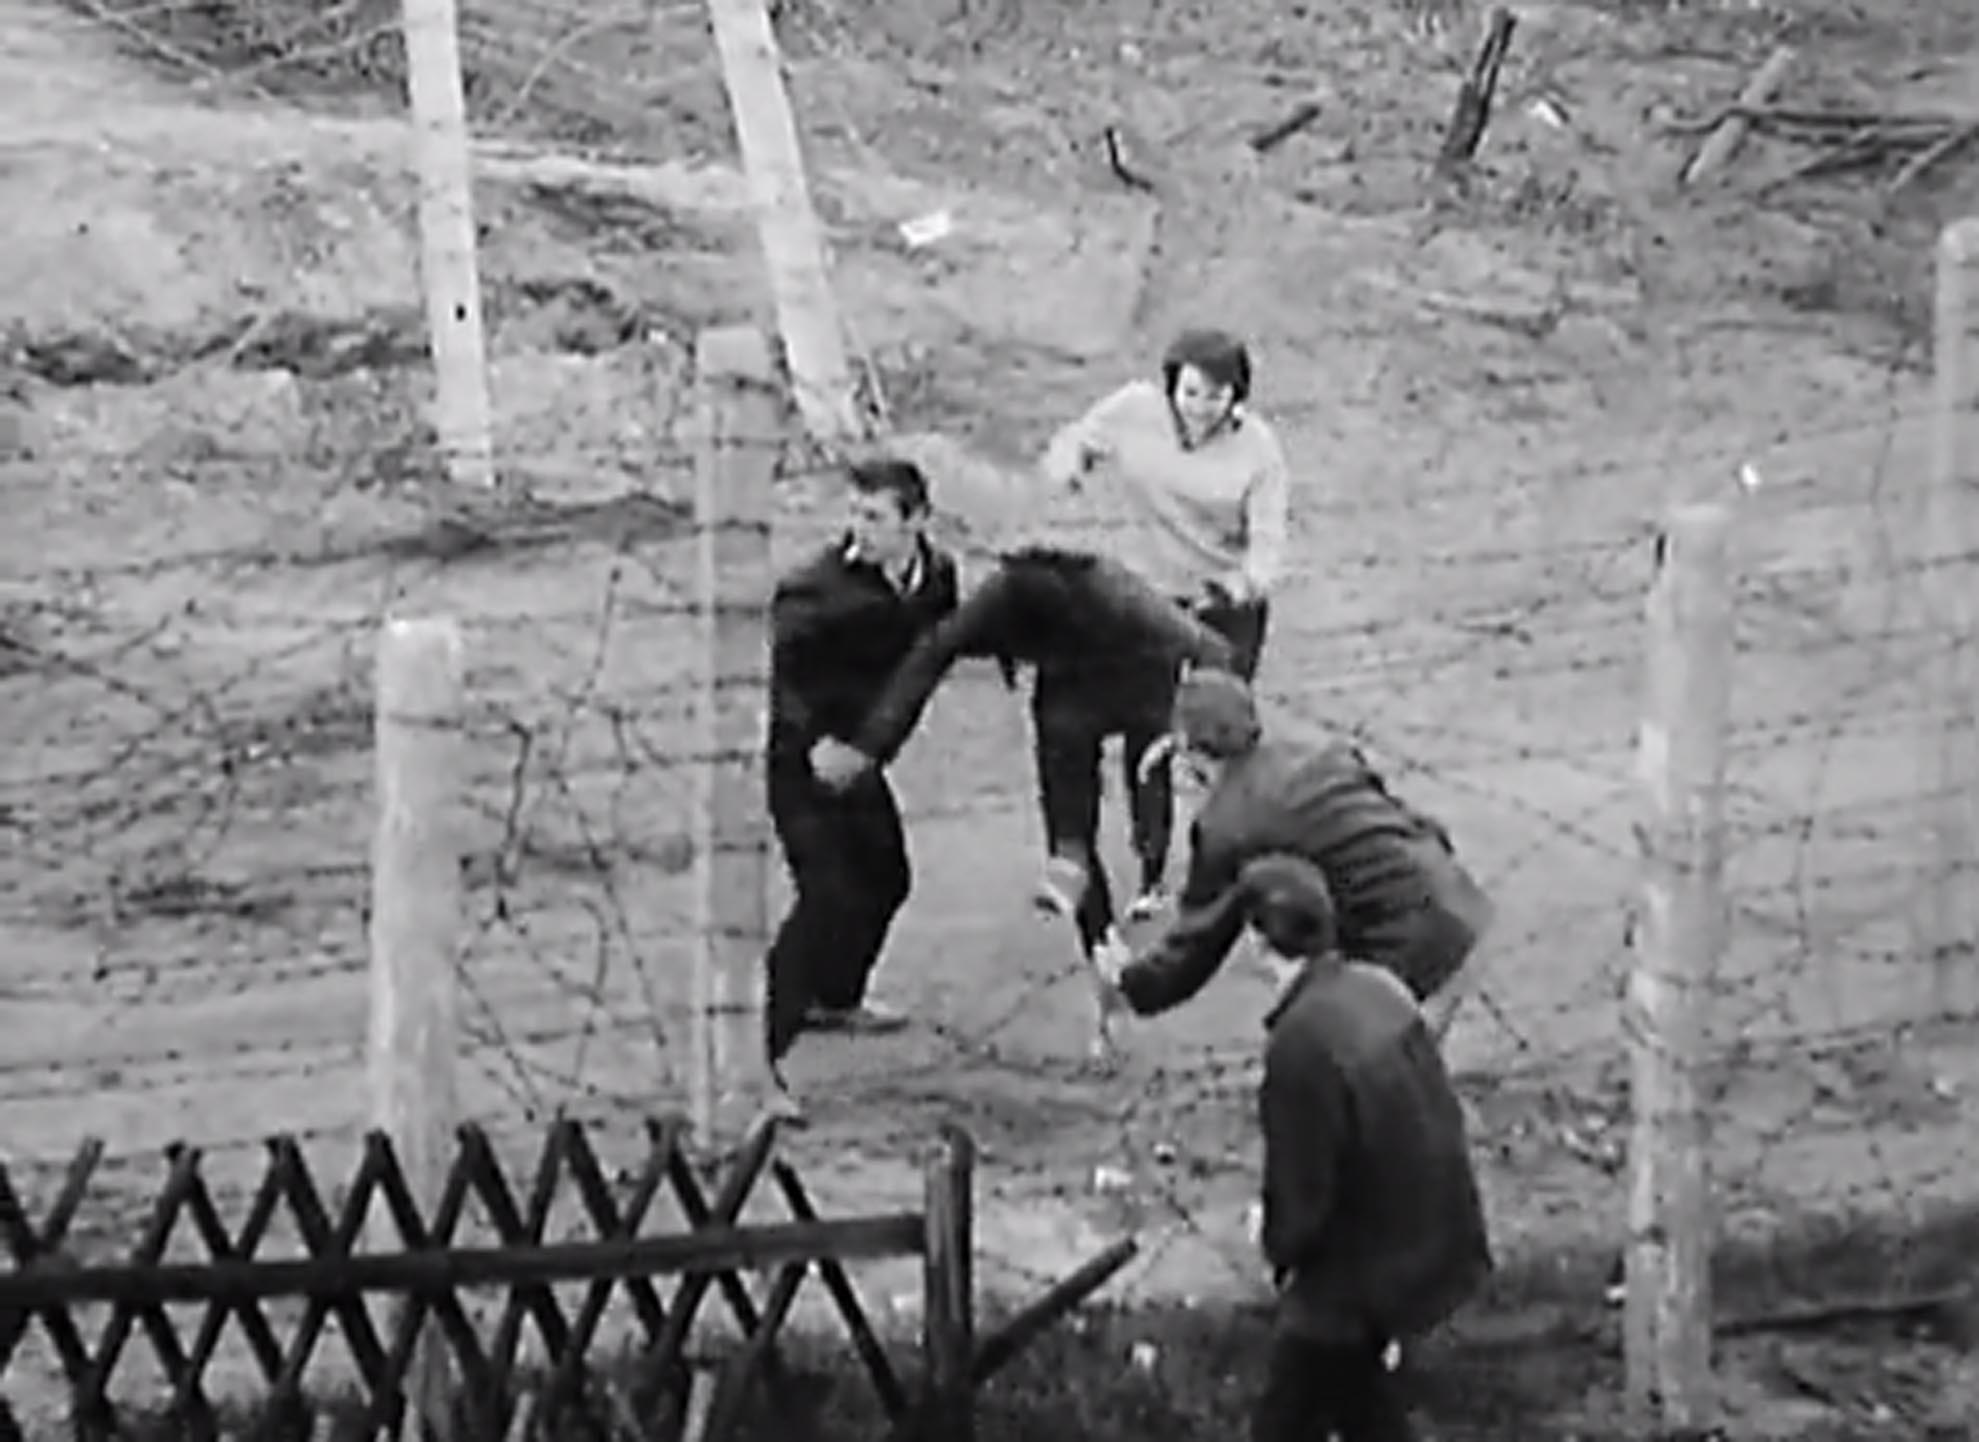 berlin-in-the-1960s-an-escape-attempt-screenshot-from-the-wall.jpg